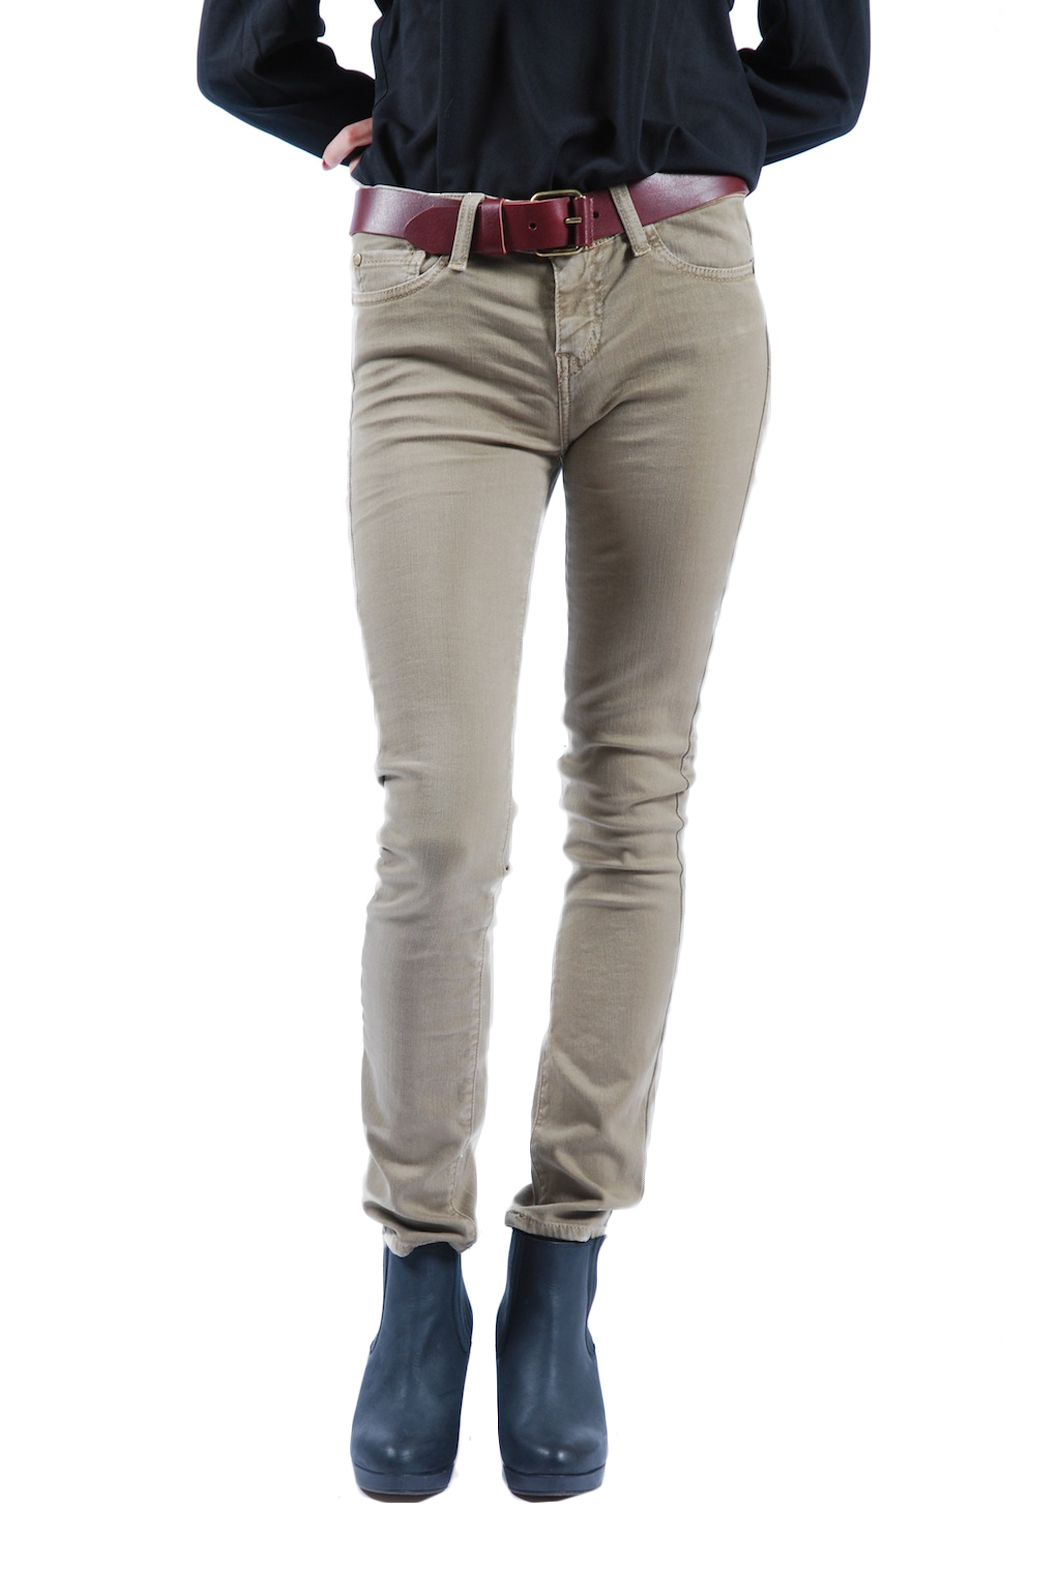 Acquaverde Colored Scarlett Skinny Jeans - Front Cropped Image